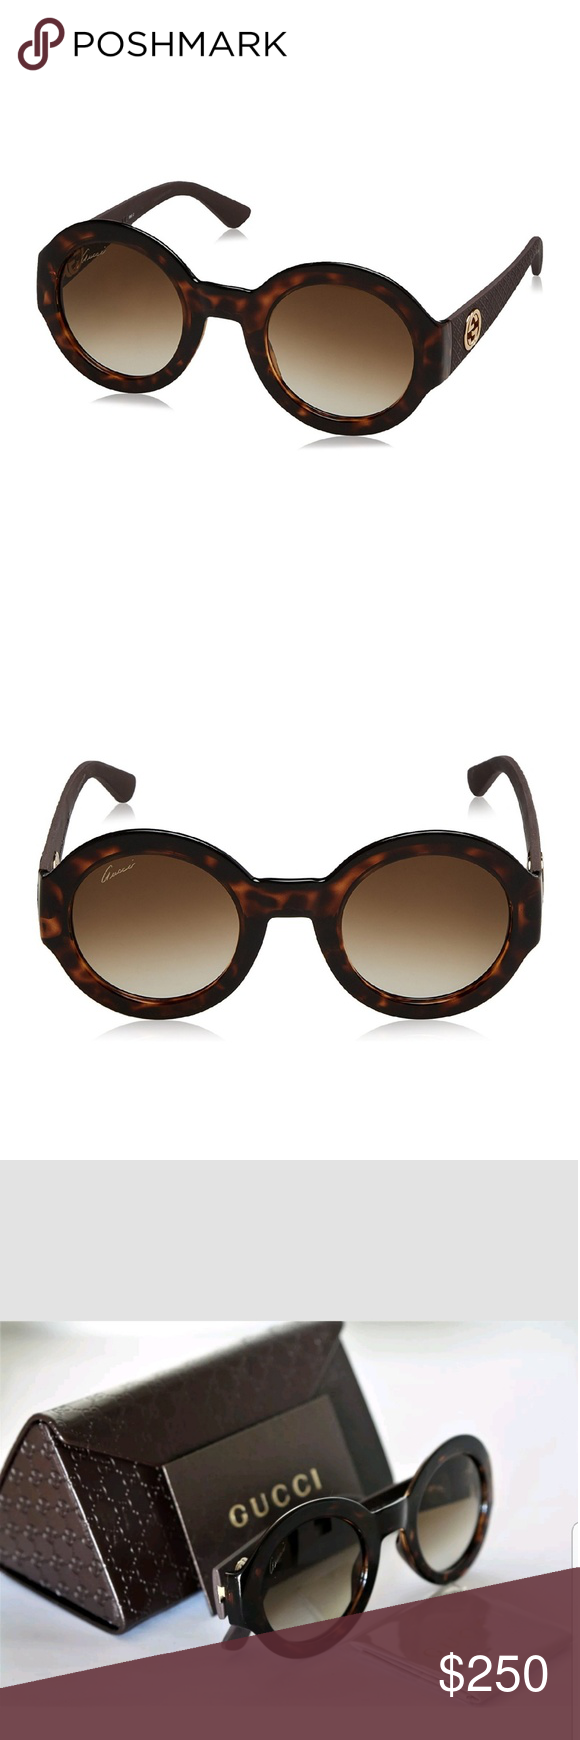 d23db5c2ce0 NEW RARE GUCCI Round Havana Brown Gold Sunhlasses Round sunglasses by GUCCI.  Frame   Material